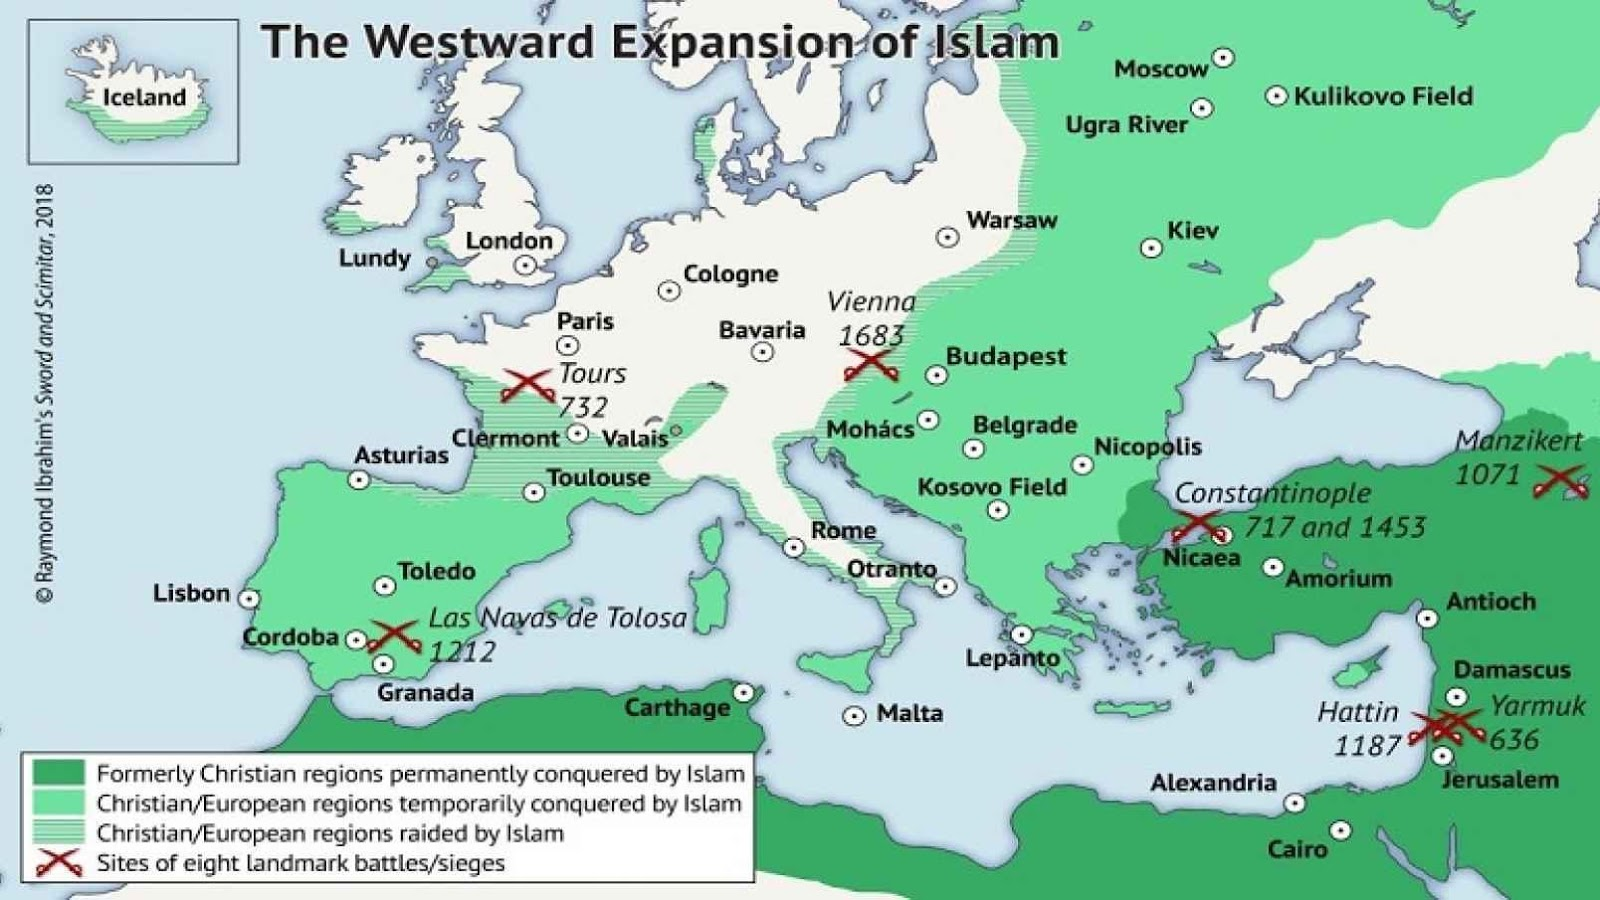 F:\My Documents\Peter\Islam\Kennis LAU\westward_expansion_of_islam.jpg